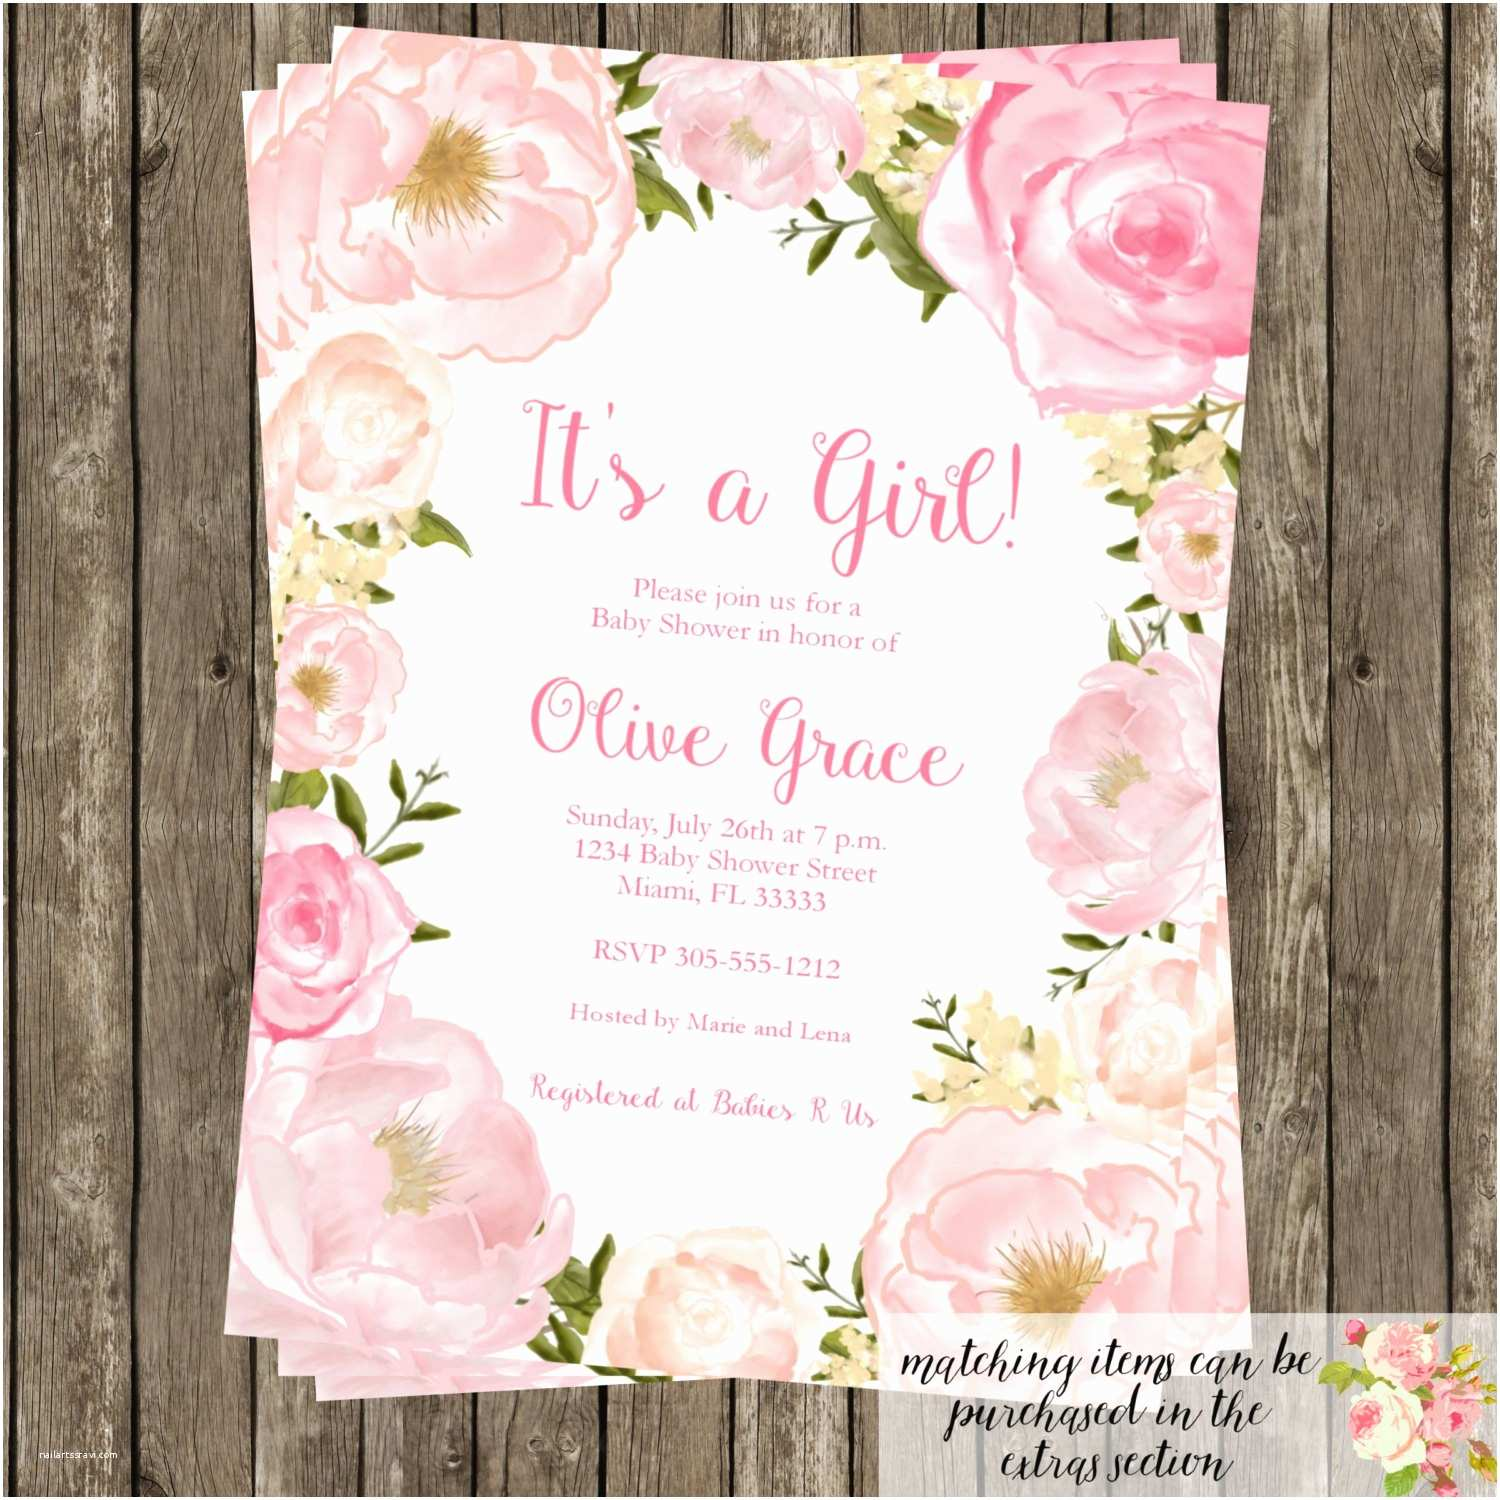 Floral Baby Shower Invitations Watercolor Floral Baby Shower Invitation Modern Birthday